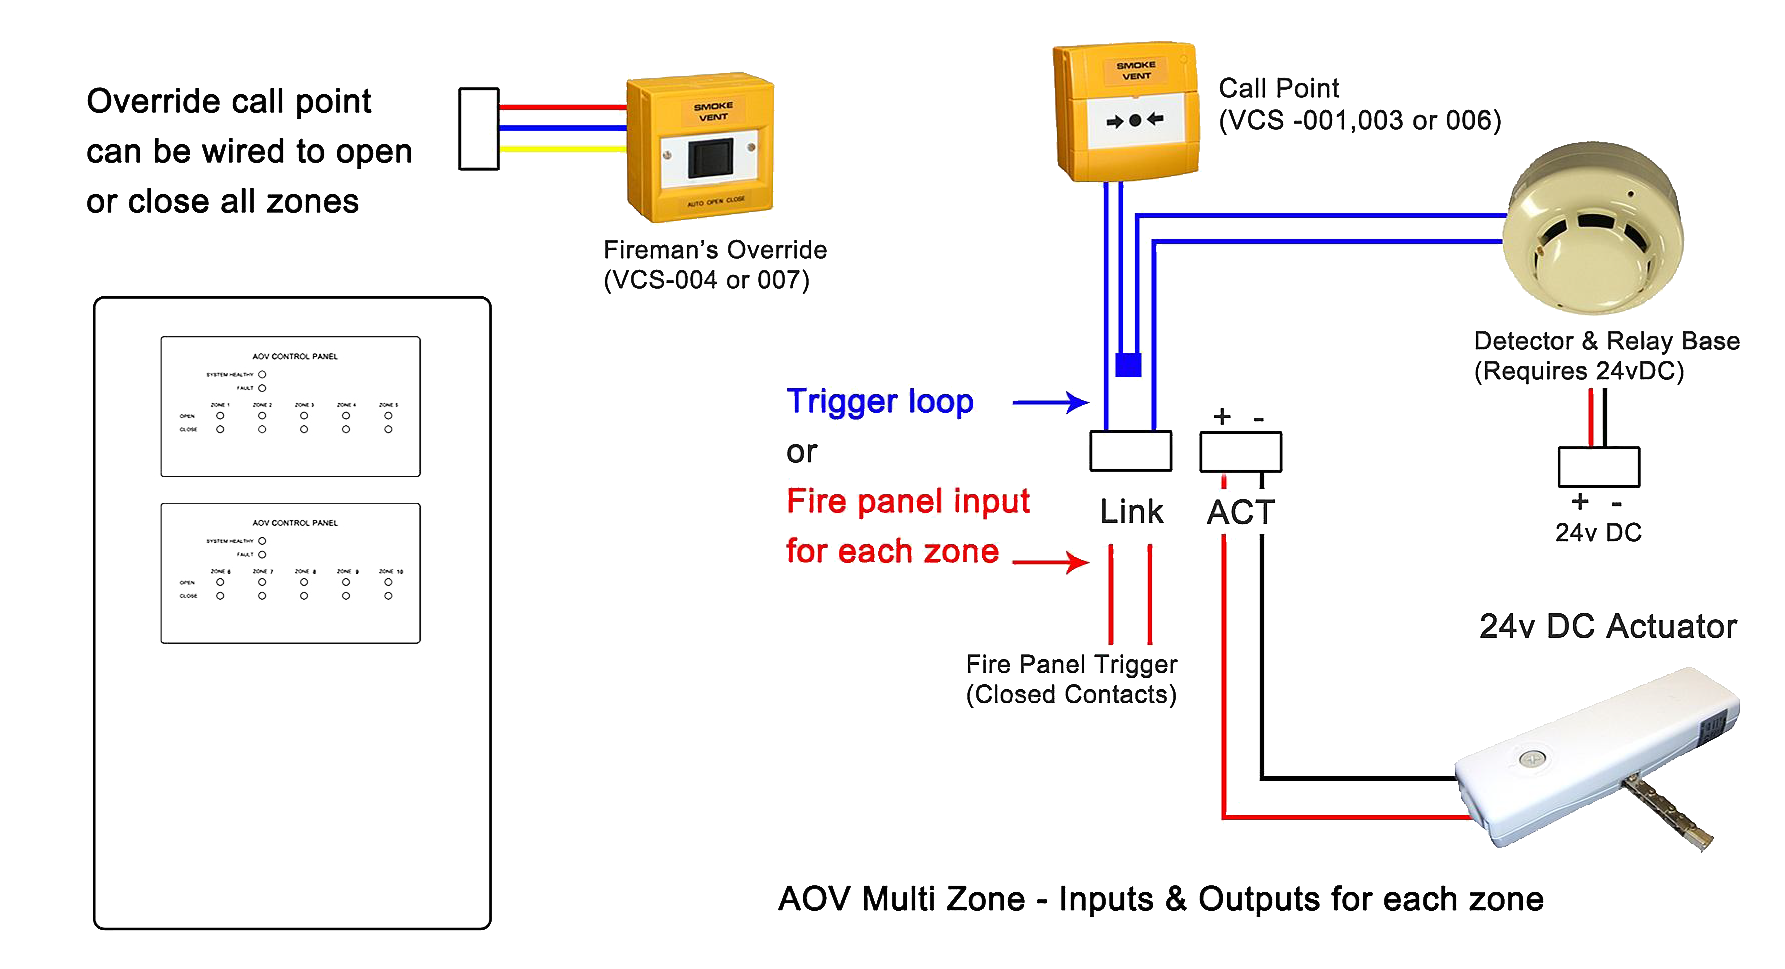 Annunciator Panel In Apm likewise Addressable Fire Alarm System Schematic Diagram as well Av System Wiring Diagram together with Pir Sensor Based Security Alarm System besides Mercruiser 350 Mpi Wiring Diagram. on basic fire alarm system diagram